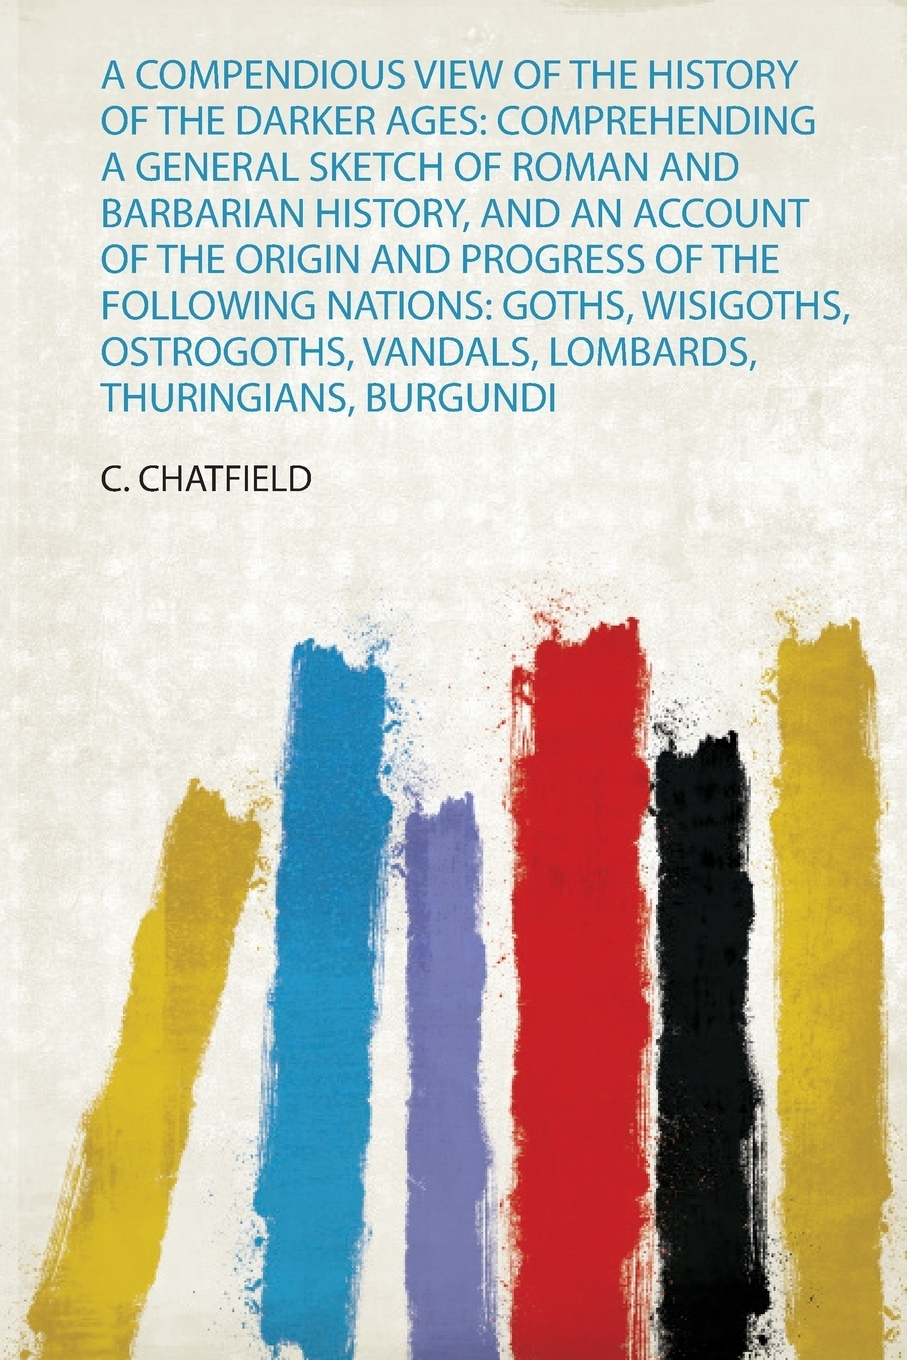 A Compendious View of the History of the Darker Ages. Comprehending a General Sketch of Roman and Barbarian History, and an Account of the Origin and Progress of the Following Nations: Goths, Wisigoths, Ostrogoths, Vandals, Lombards, Thuringians, ... hegel the end of history and the future